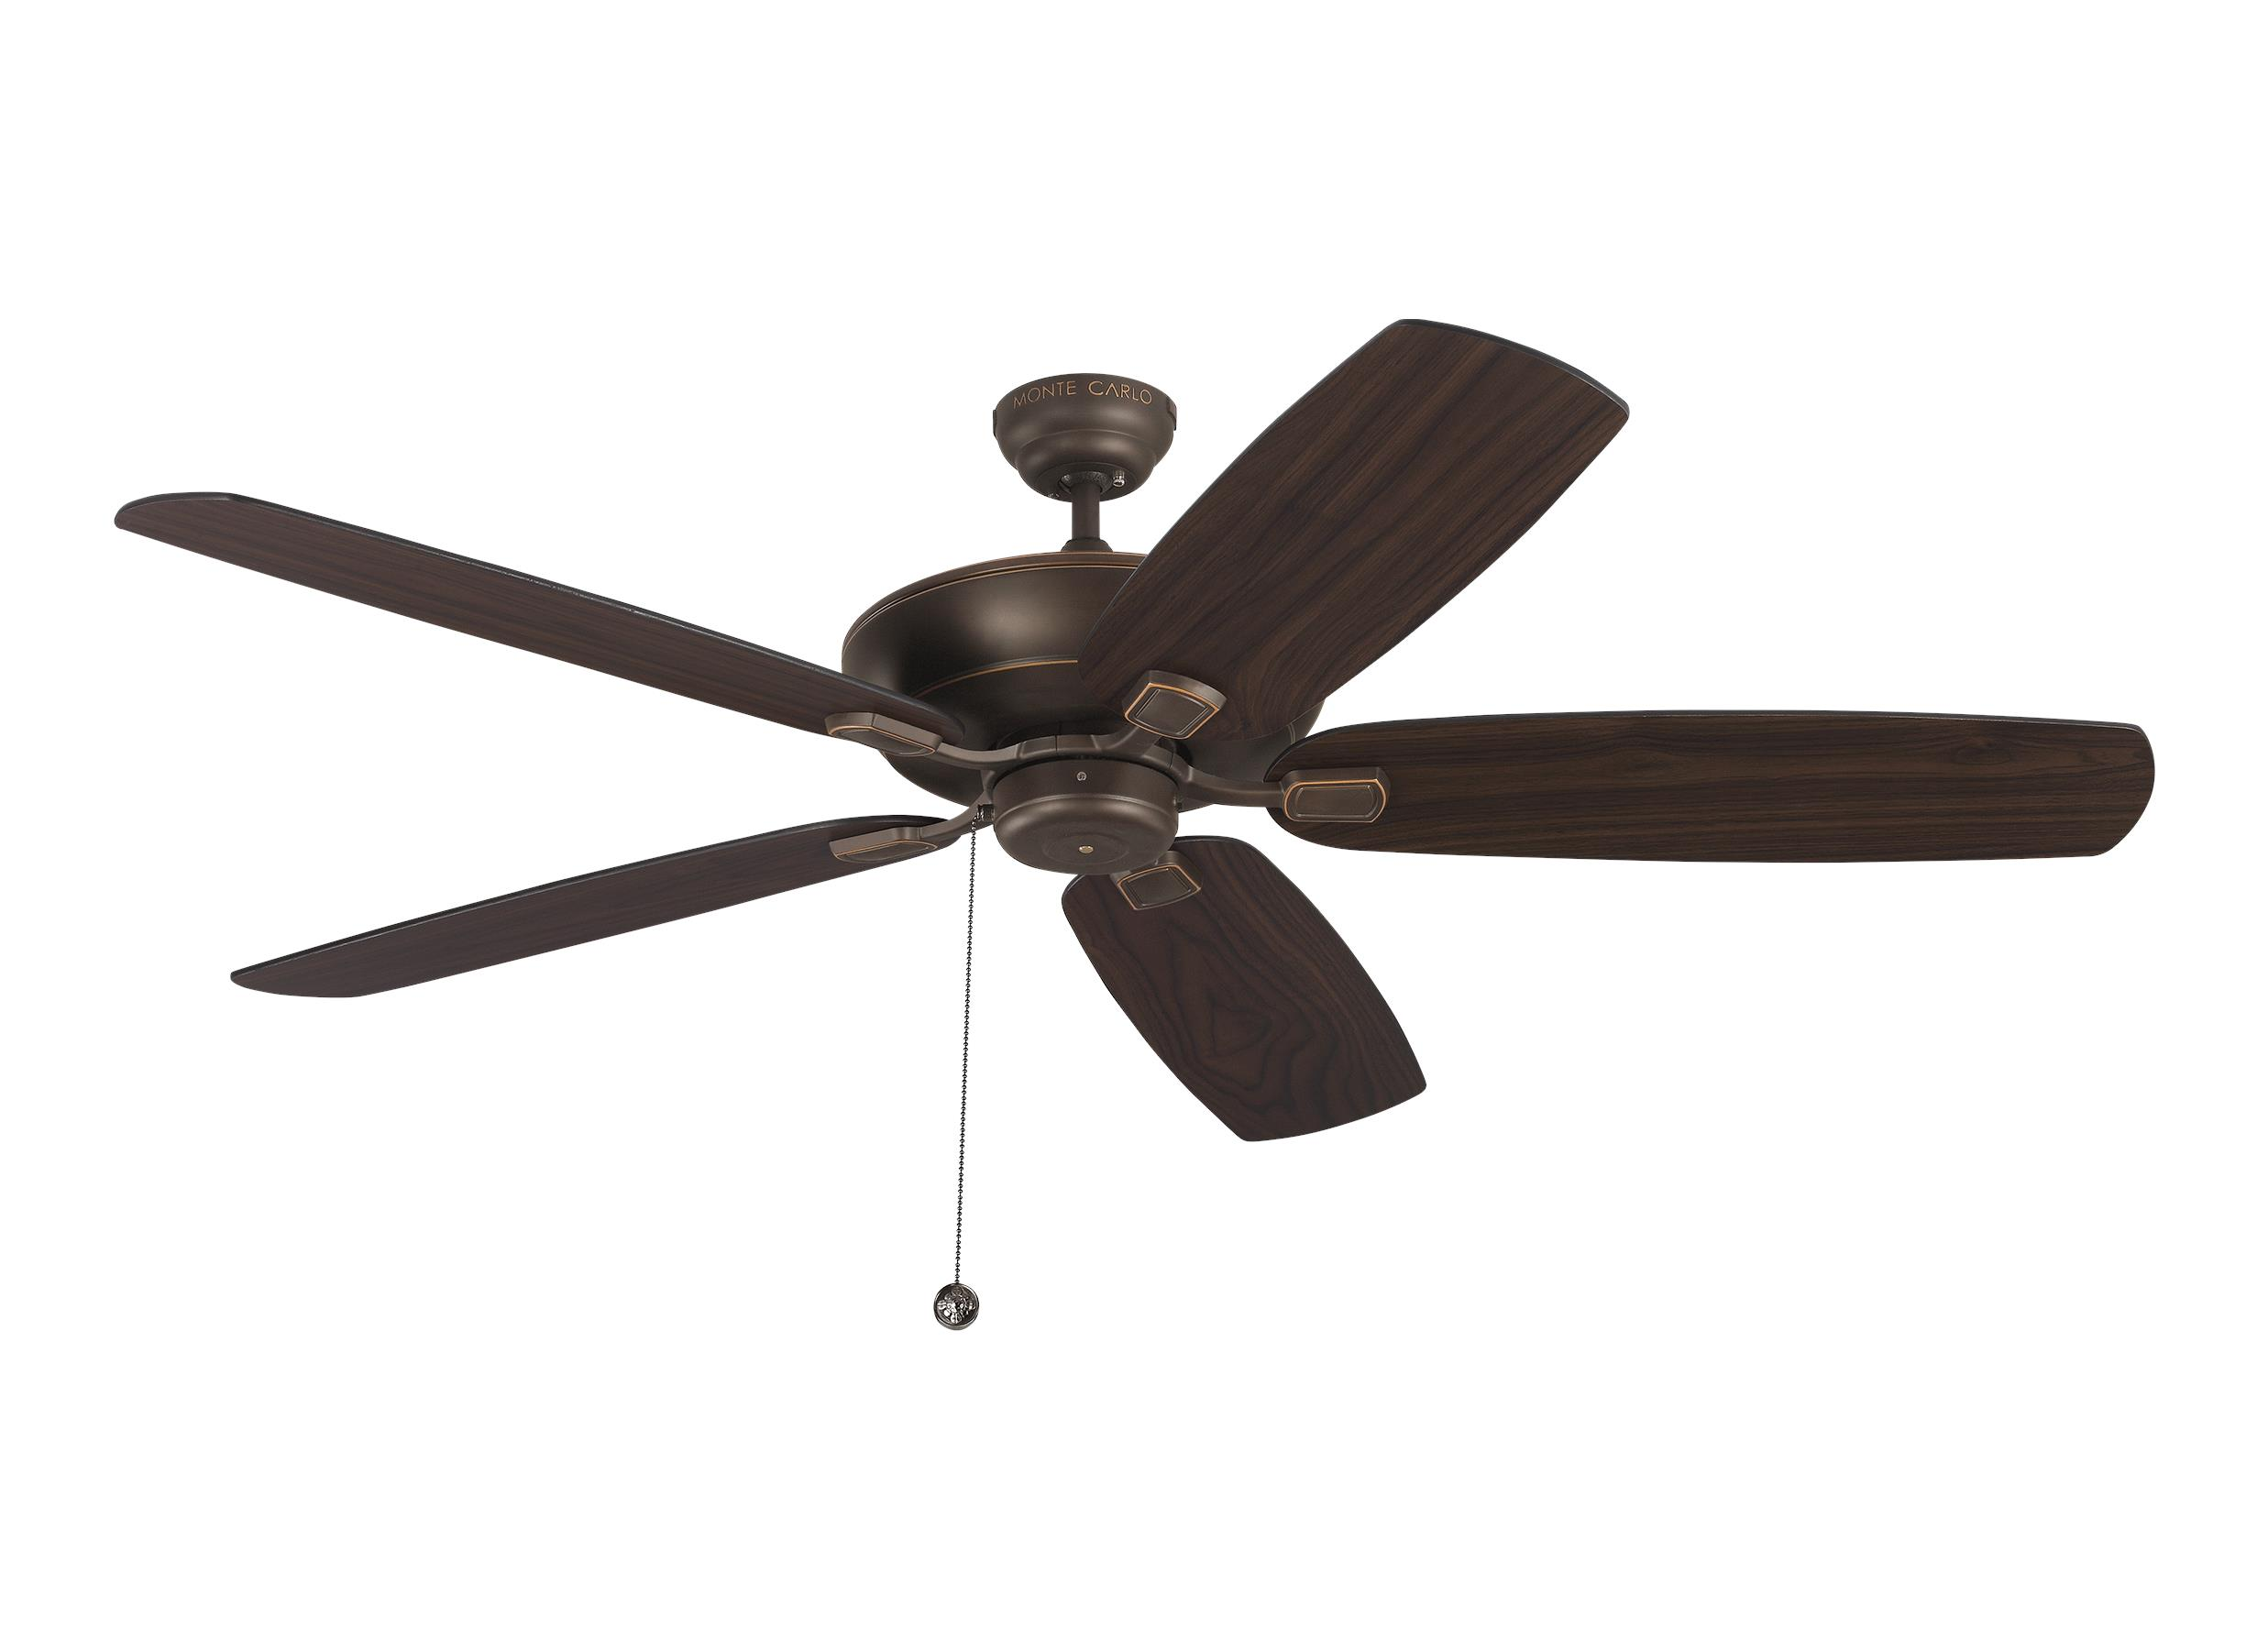 Indoor Ceiling Fans by the Monte Carlo Fan pany